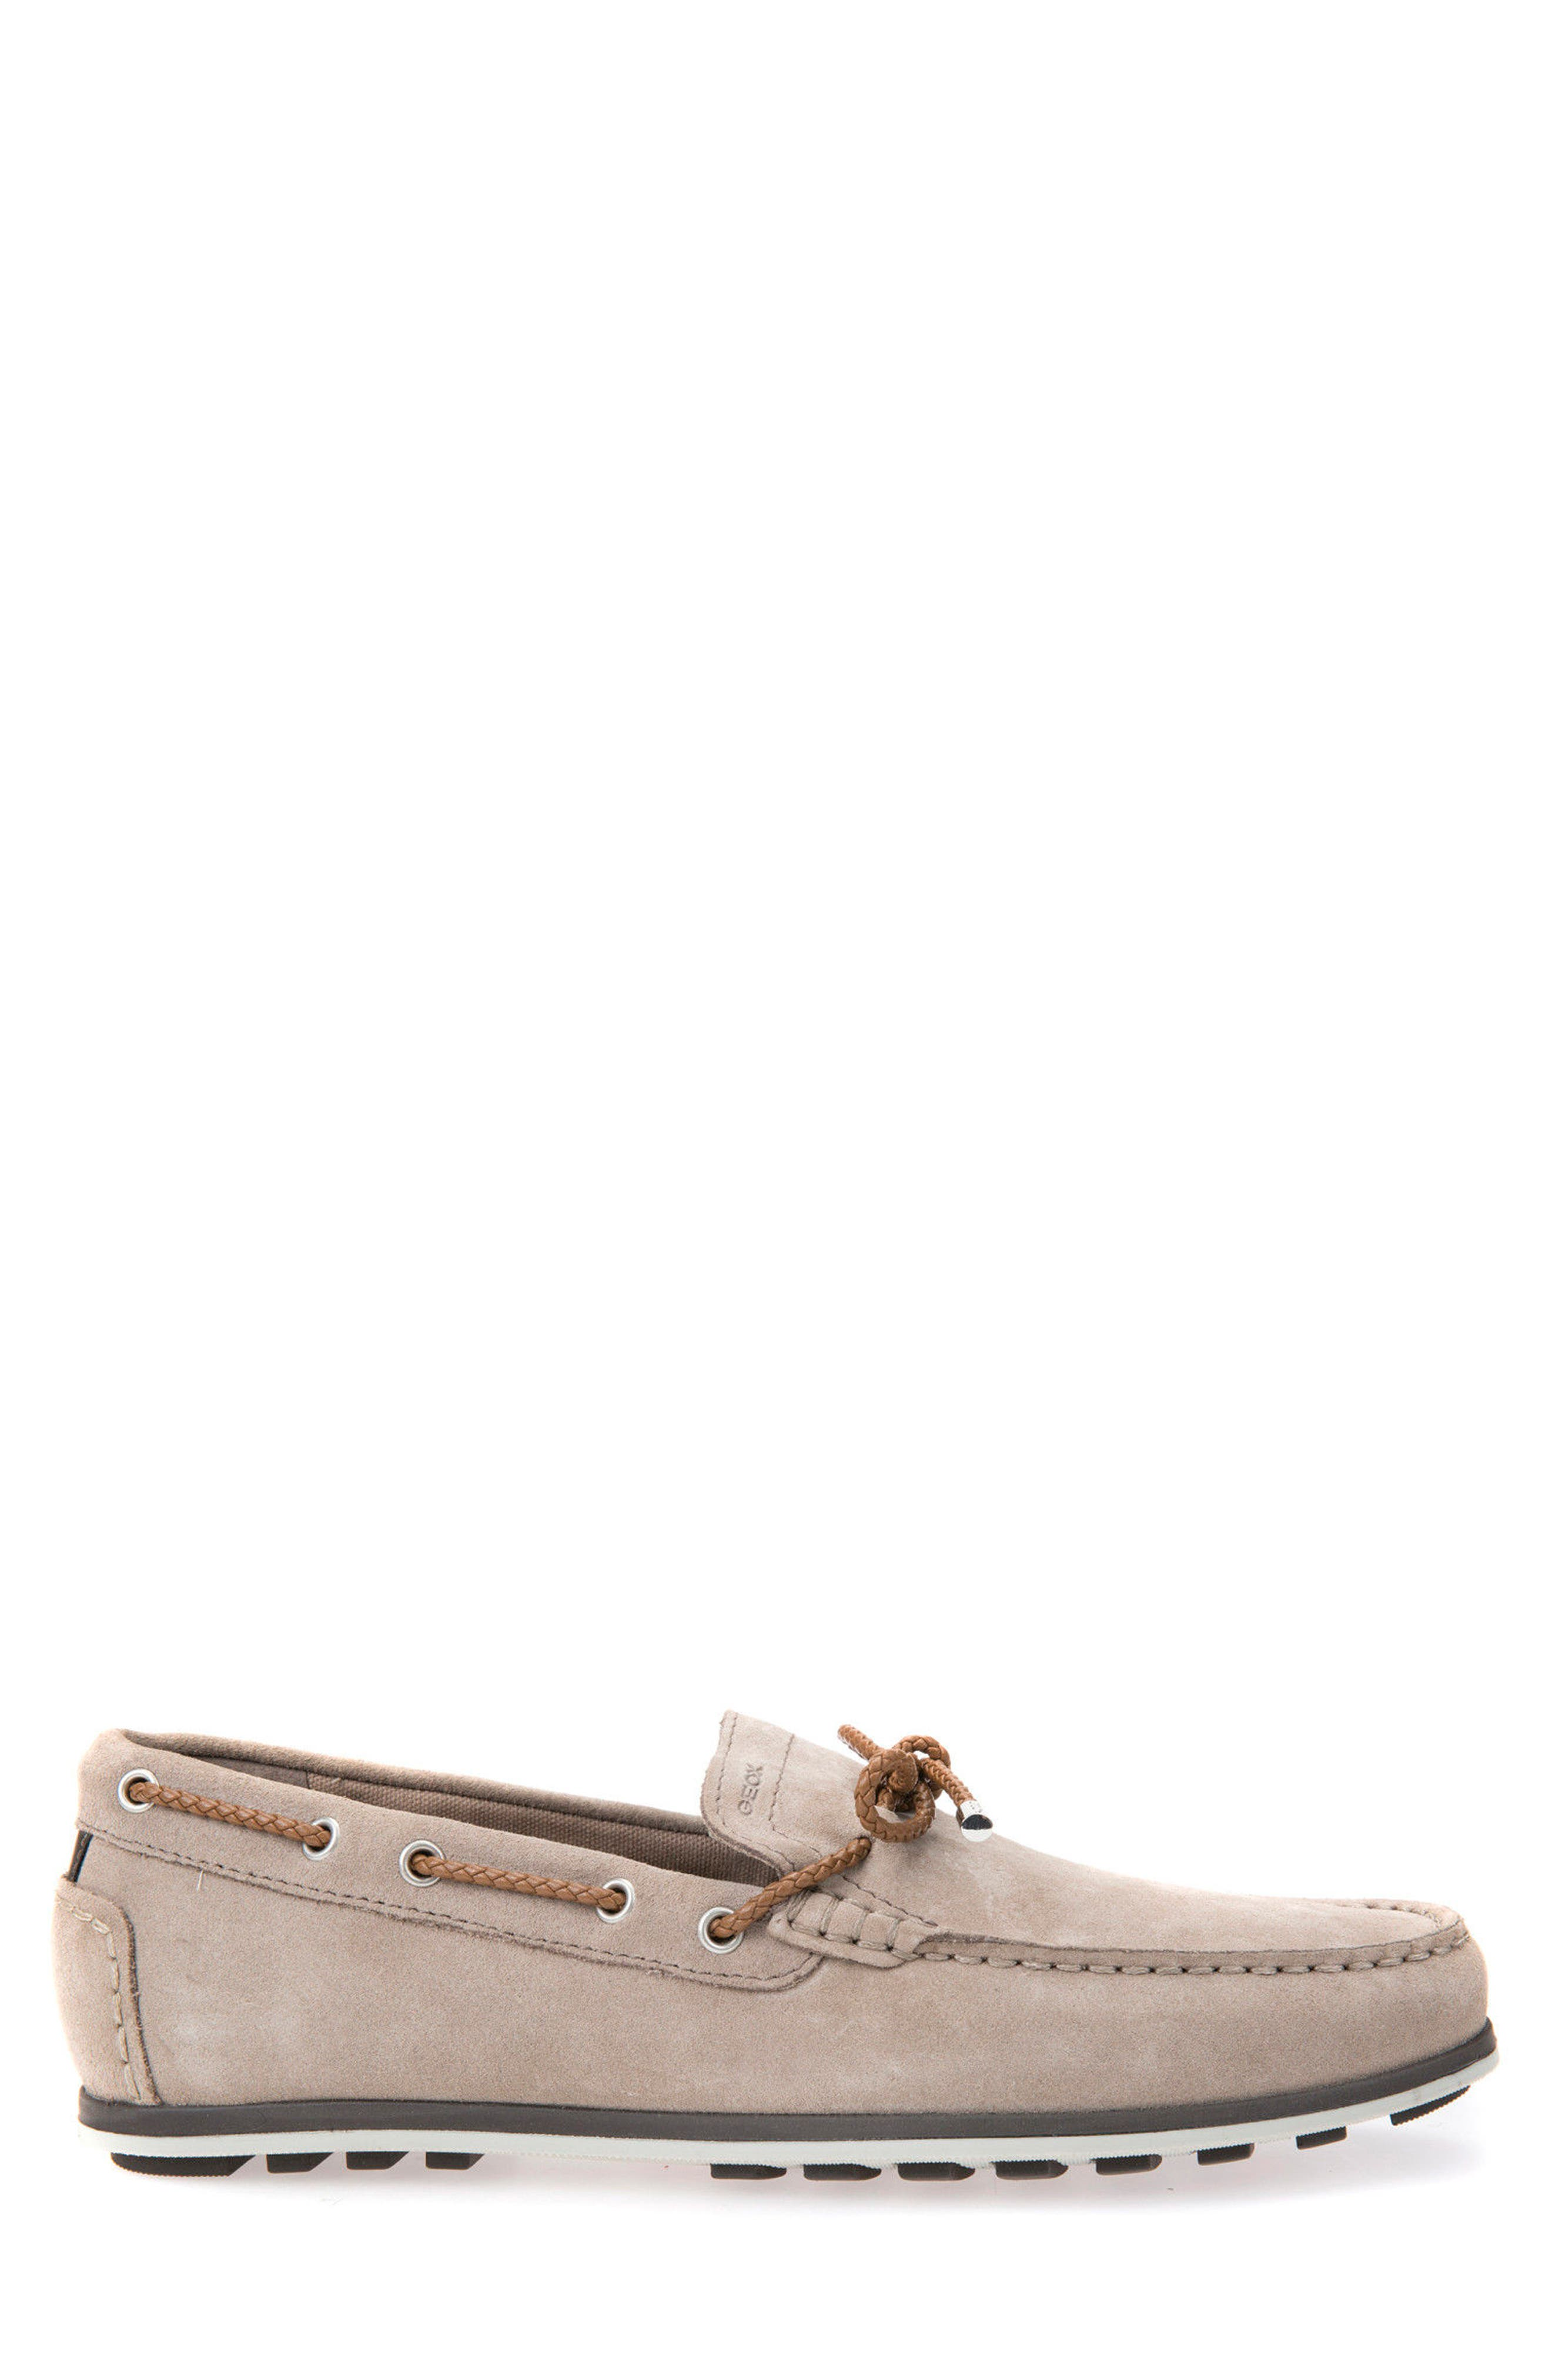 Mirvin 2 Boat Shoe,                             Alternate thumbnail 3, color,                             Taupe Suede